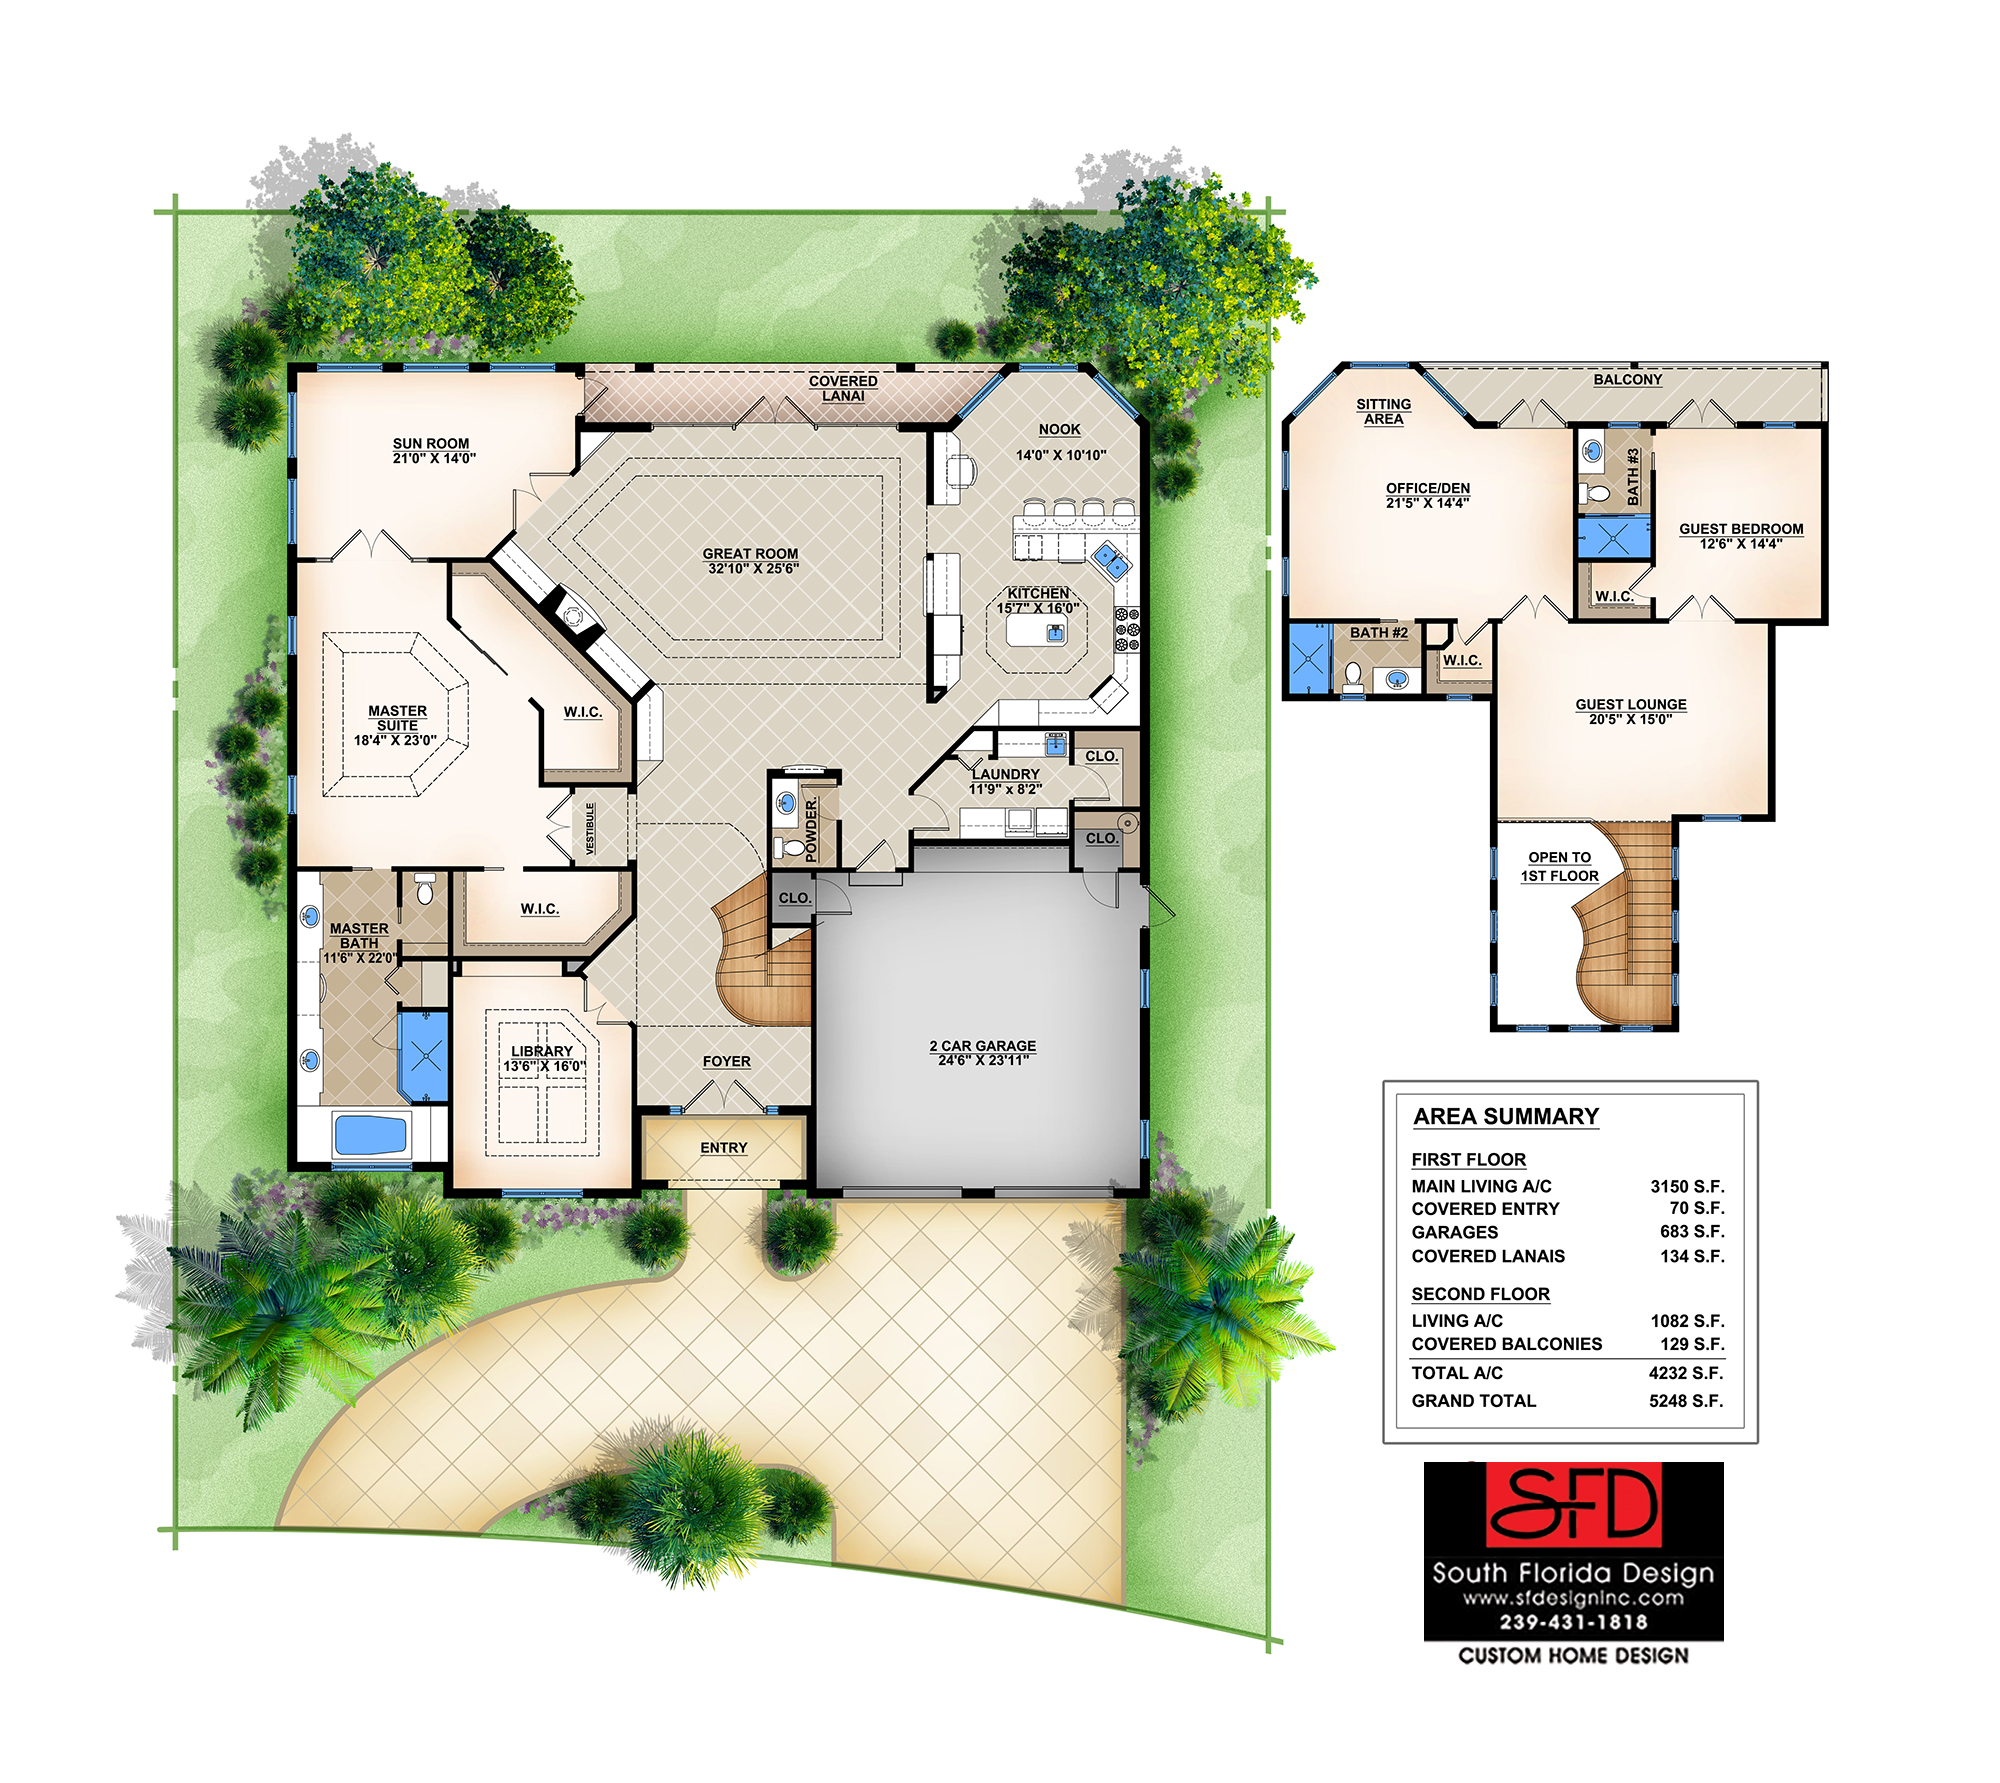 South florida designs 3 bedroom mediterranean 2 story for 2 story great room floor plans